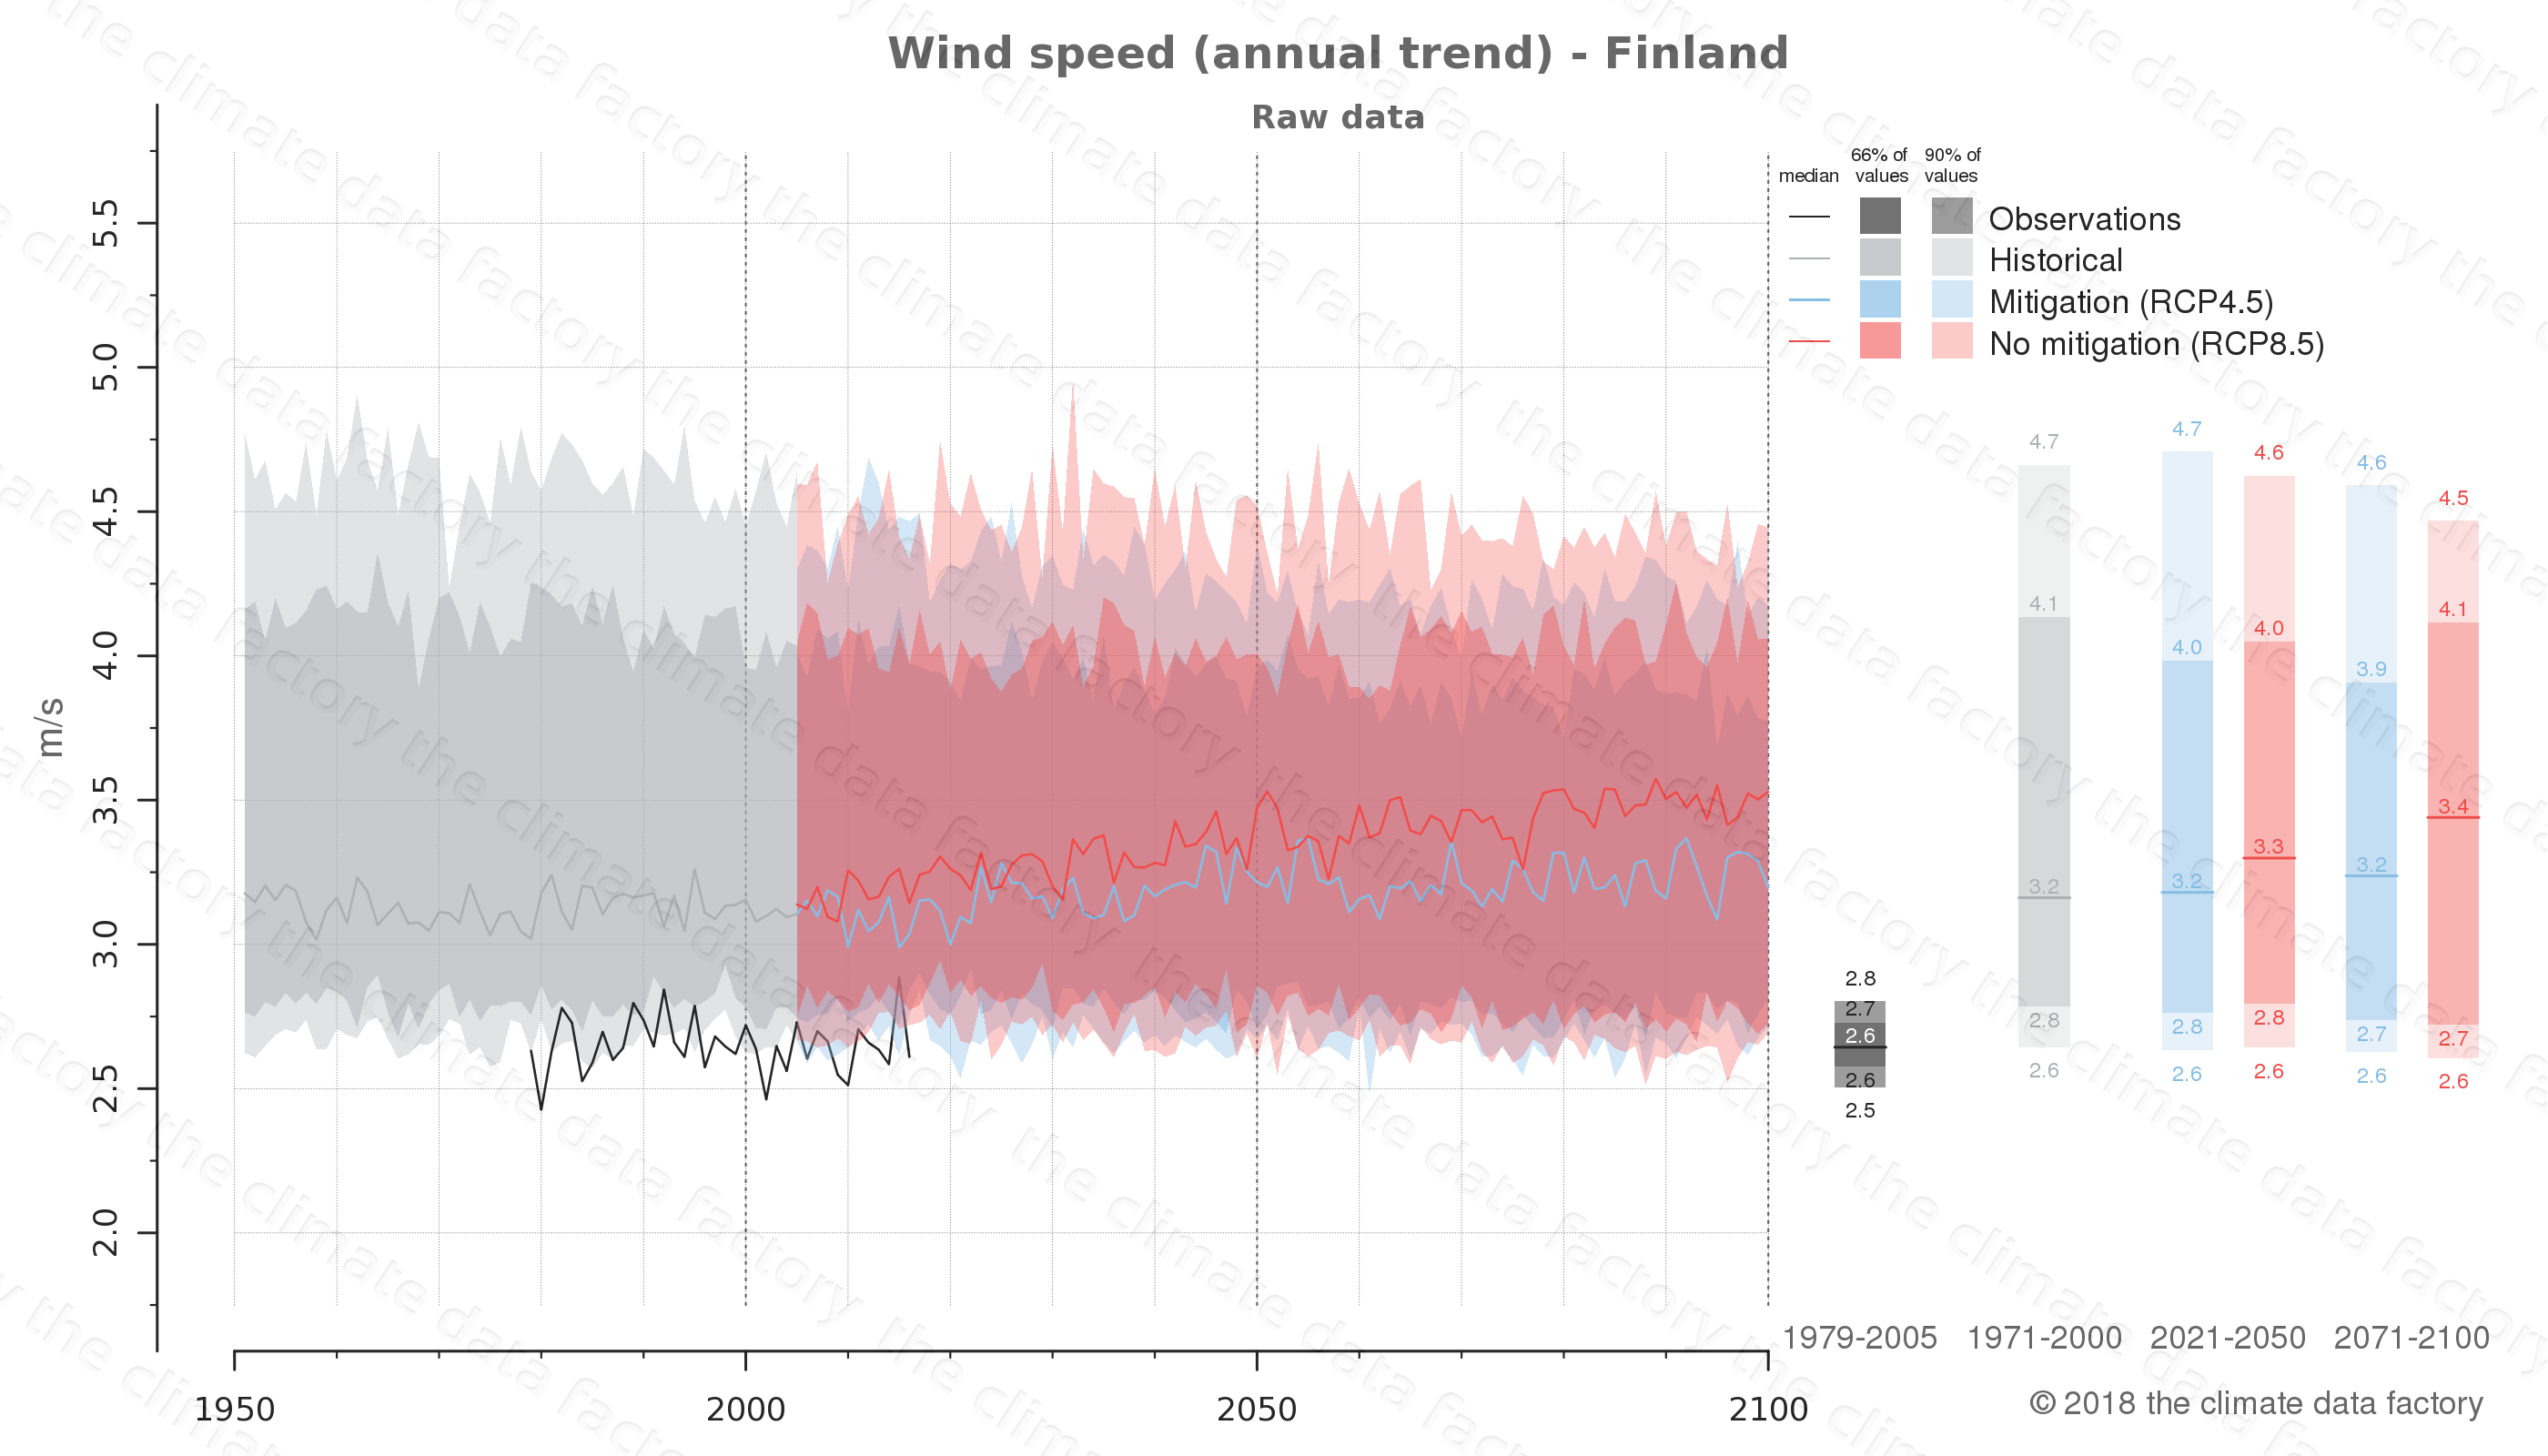 climate change data policy adaptation climate graph country data wind speed finland europe